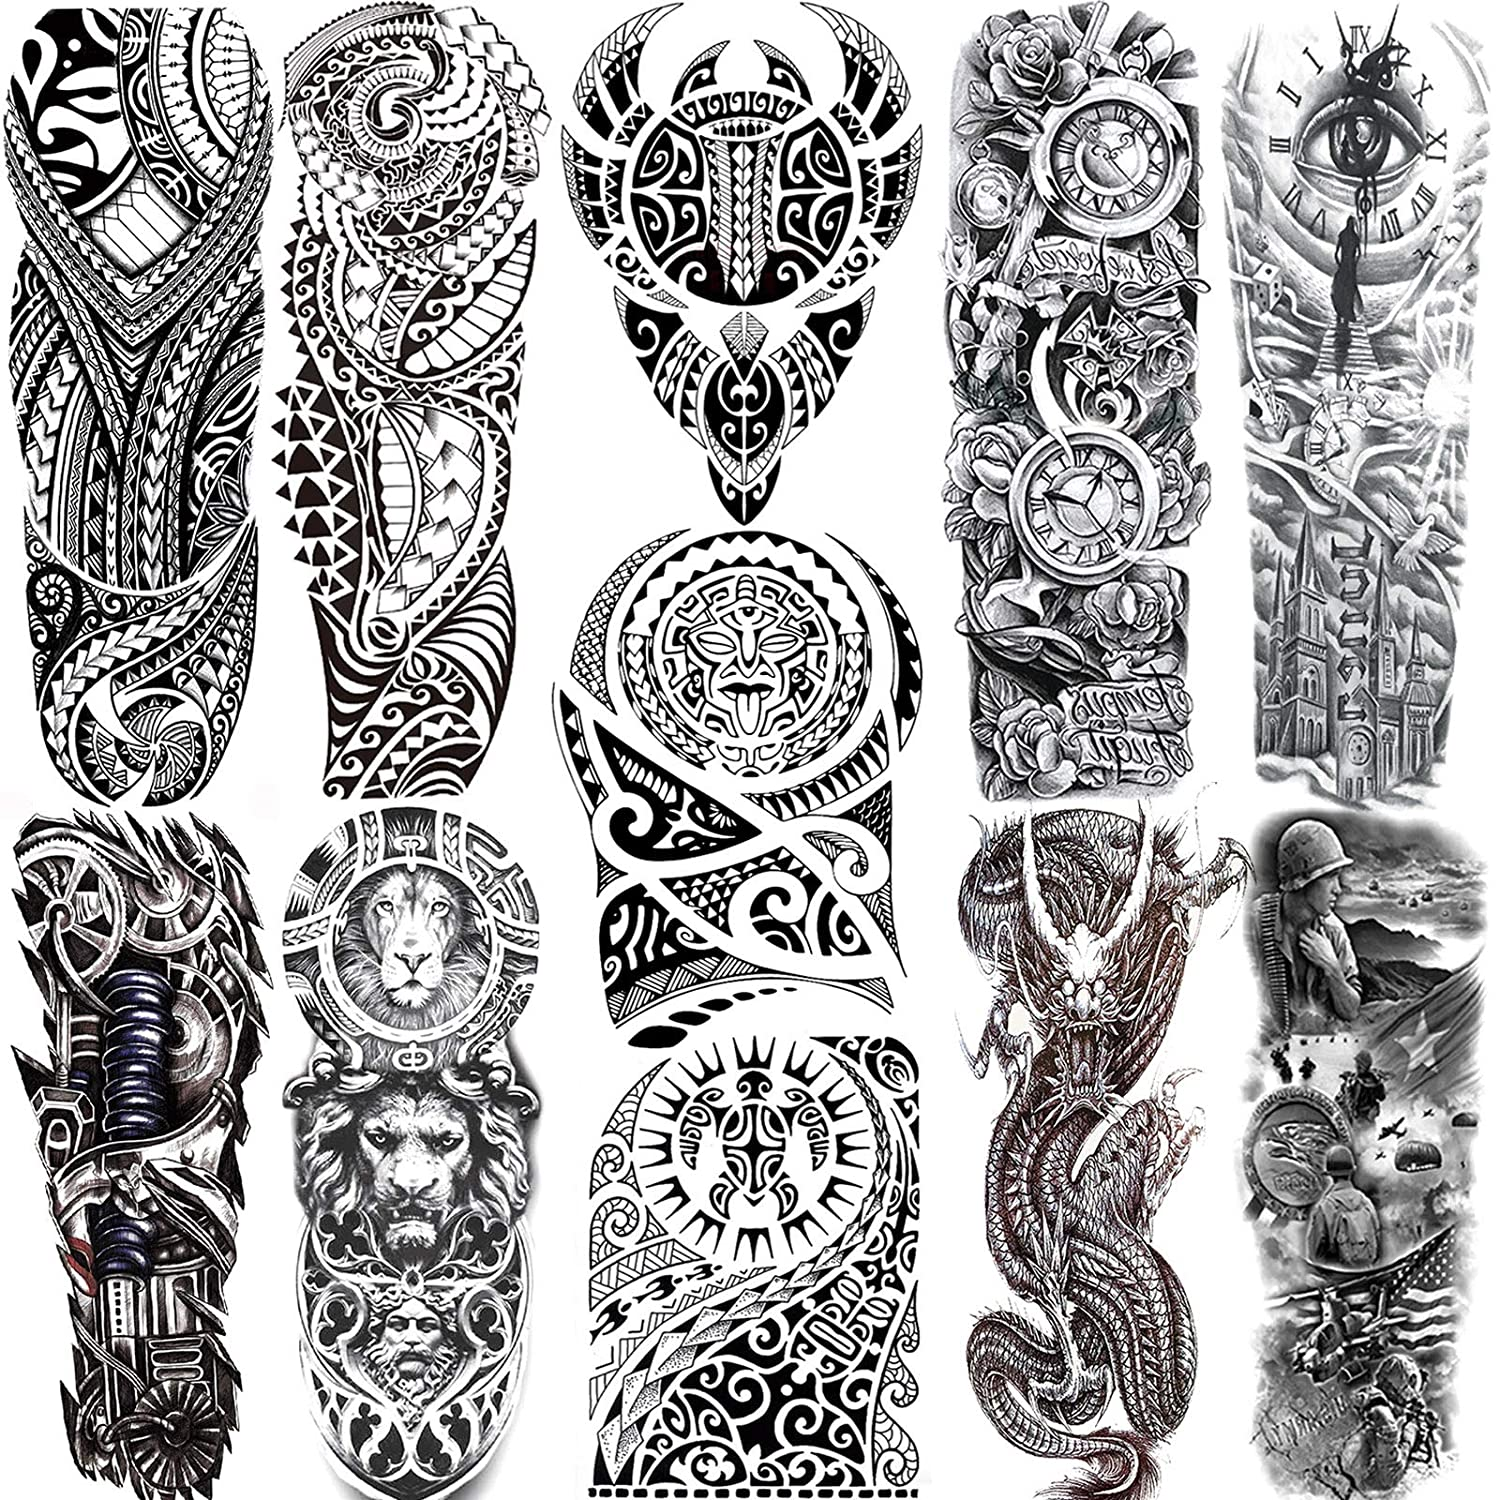 11 Sheets NEZAR Maori Temporary Tattoo Sleeve For Men Adults Tiki Turtle Manta Waterproof Fake Tattoo Sleeves For Women Black Dragon Totem Tribal Military Long Full Sleeve Tattoos Temporary Stickers